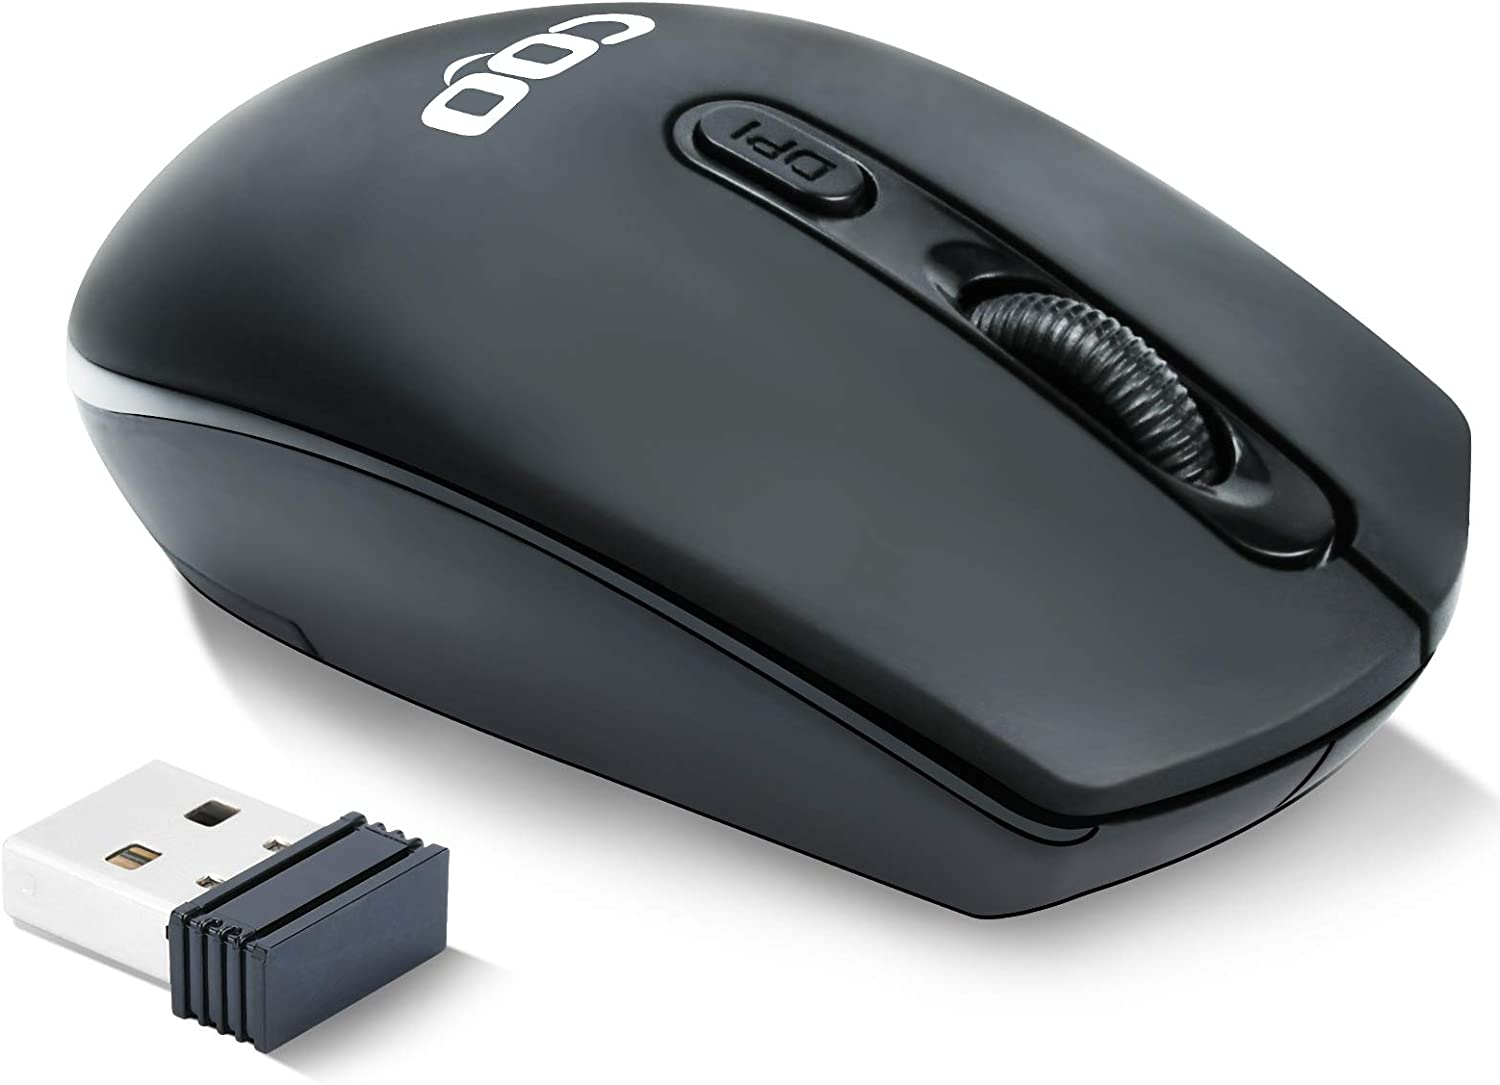 Wireless Computer Mouse,2.4G Wireless Optical Mouse with USB Receiver, Easy Click for Office and Home Mice,3 Adjustable DPI for Notebook, PC, Laptop, Computer, MacBook(Black)